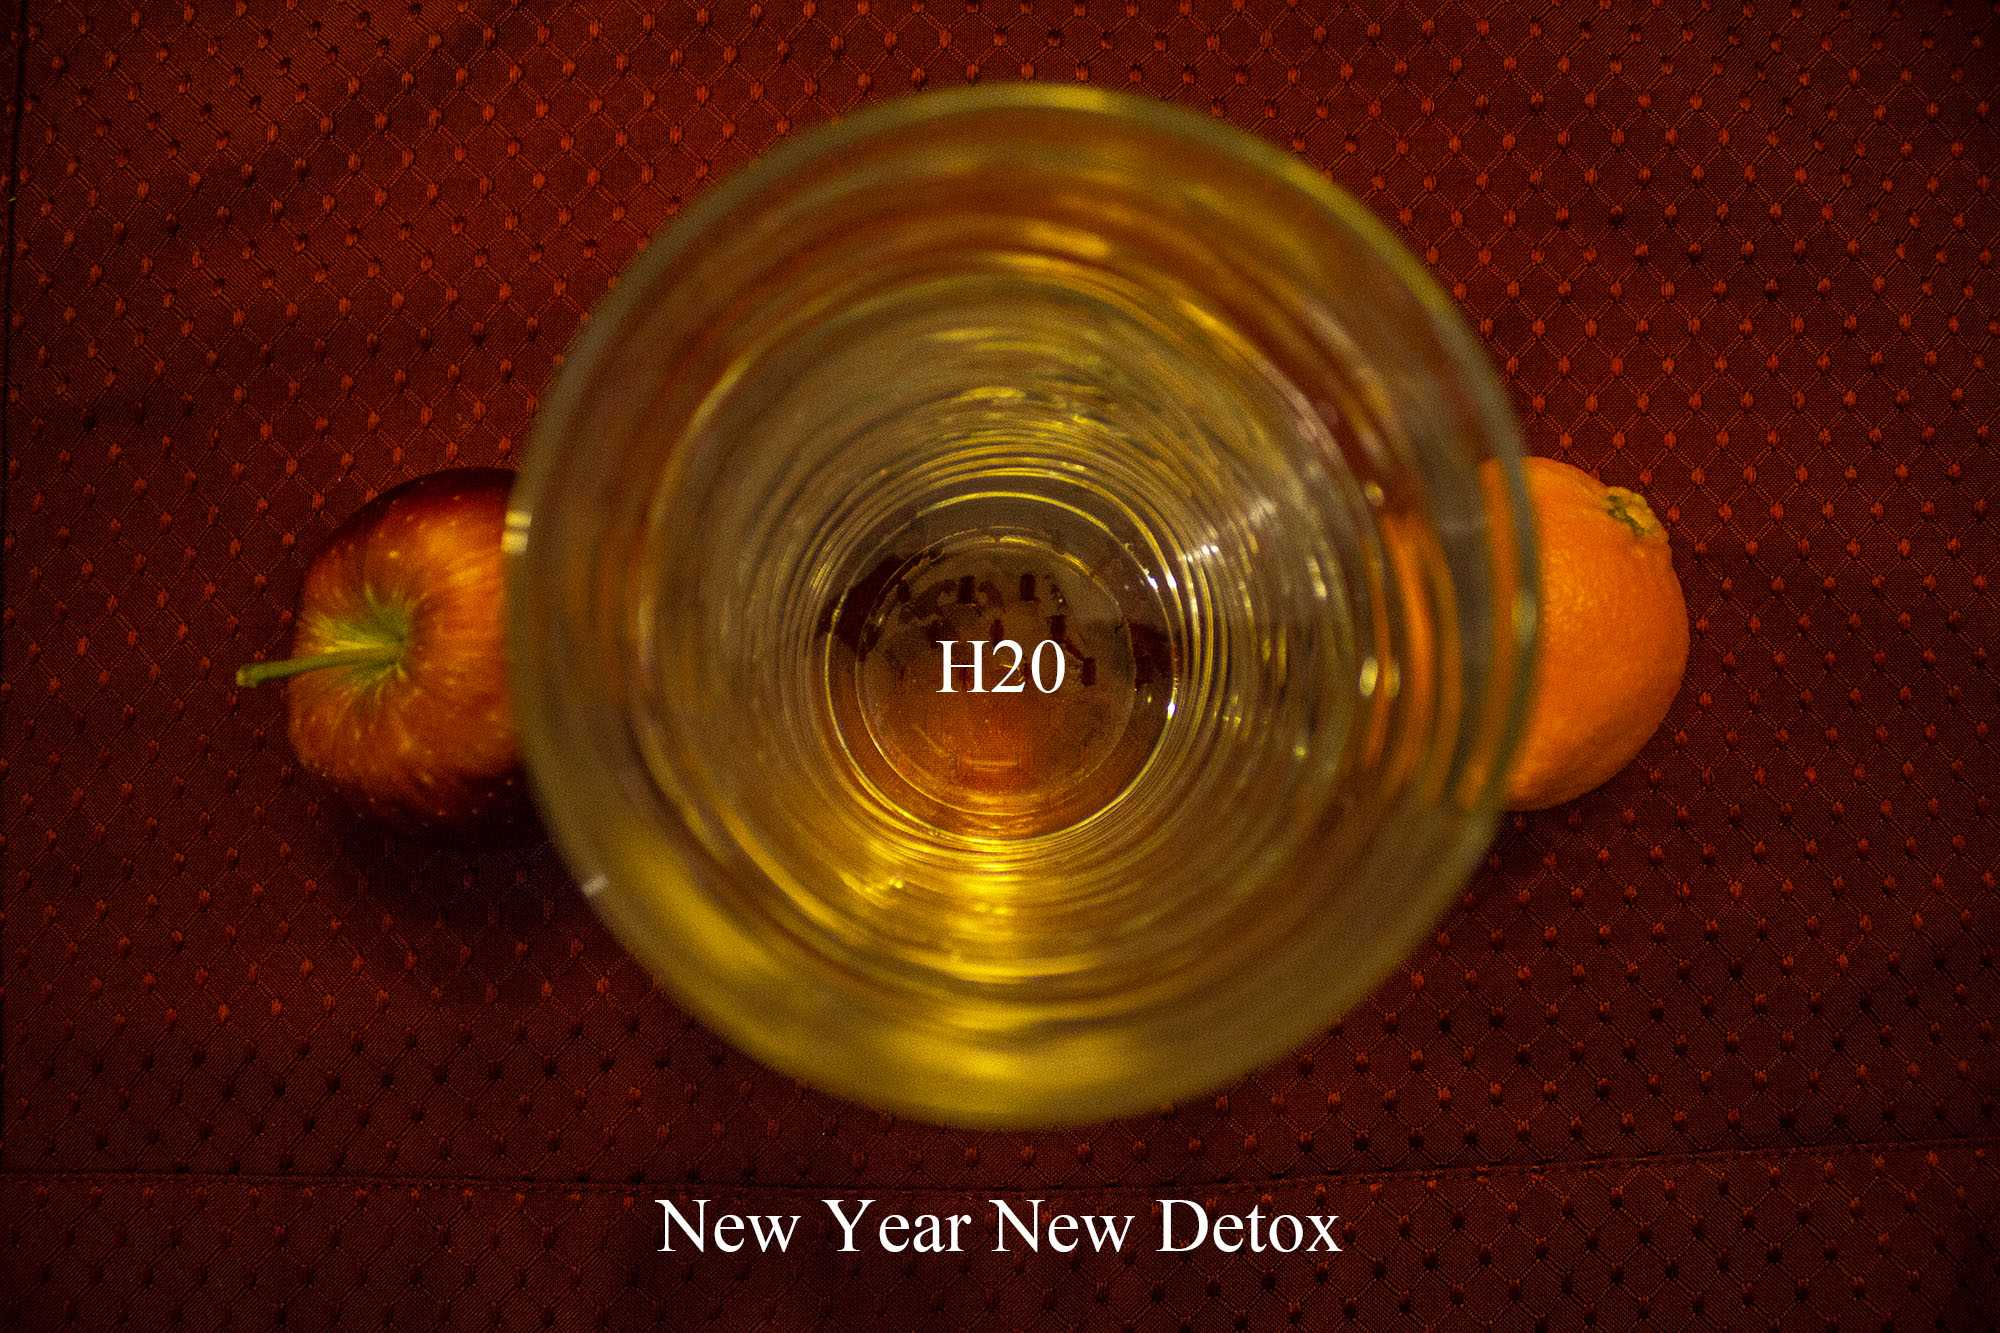 Start your detox with a cool glass of water, and throw in some fresh fruit!